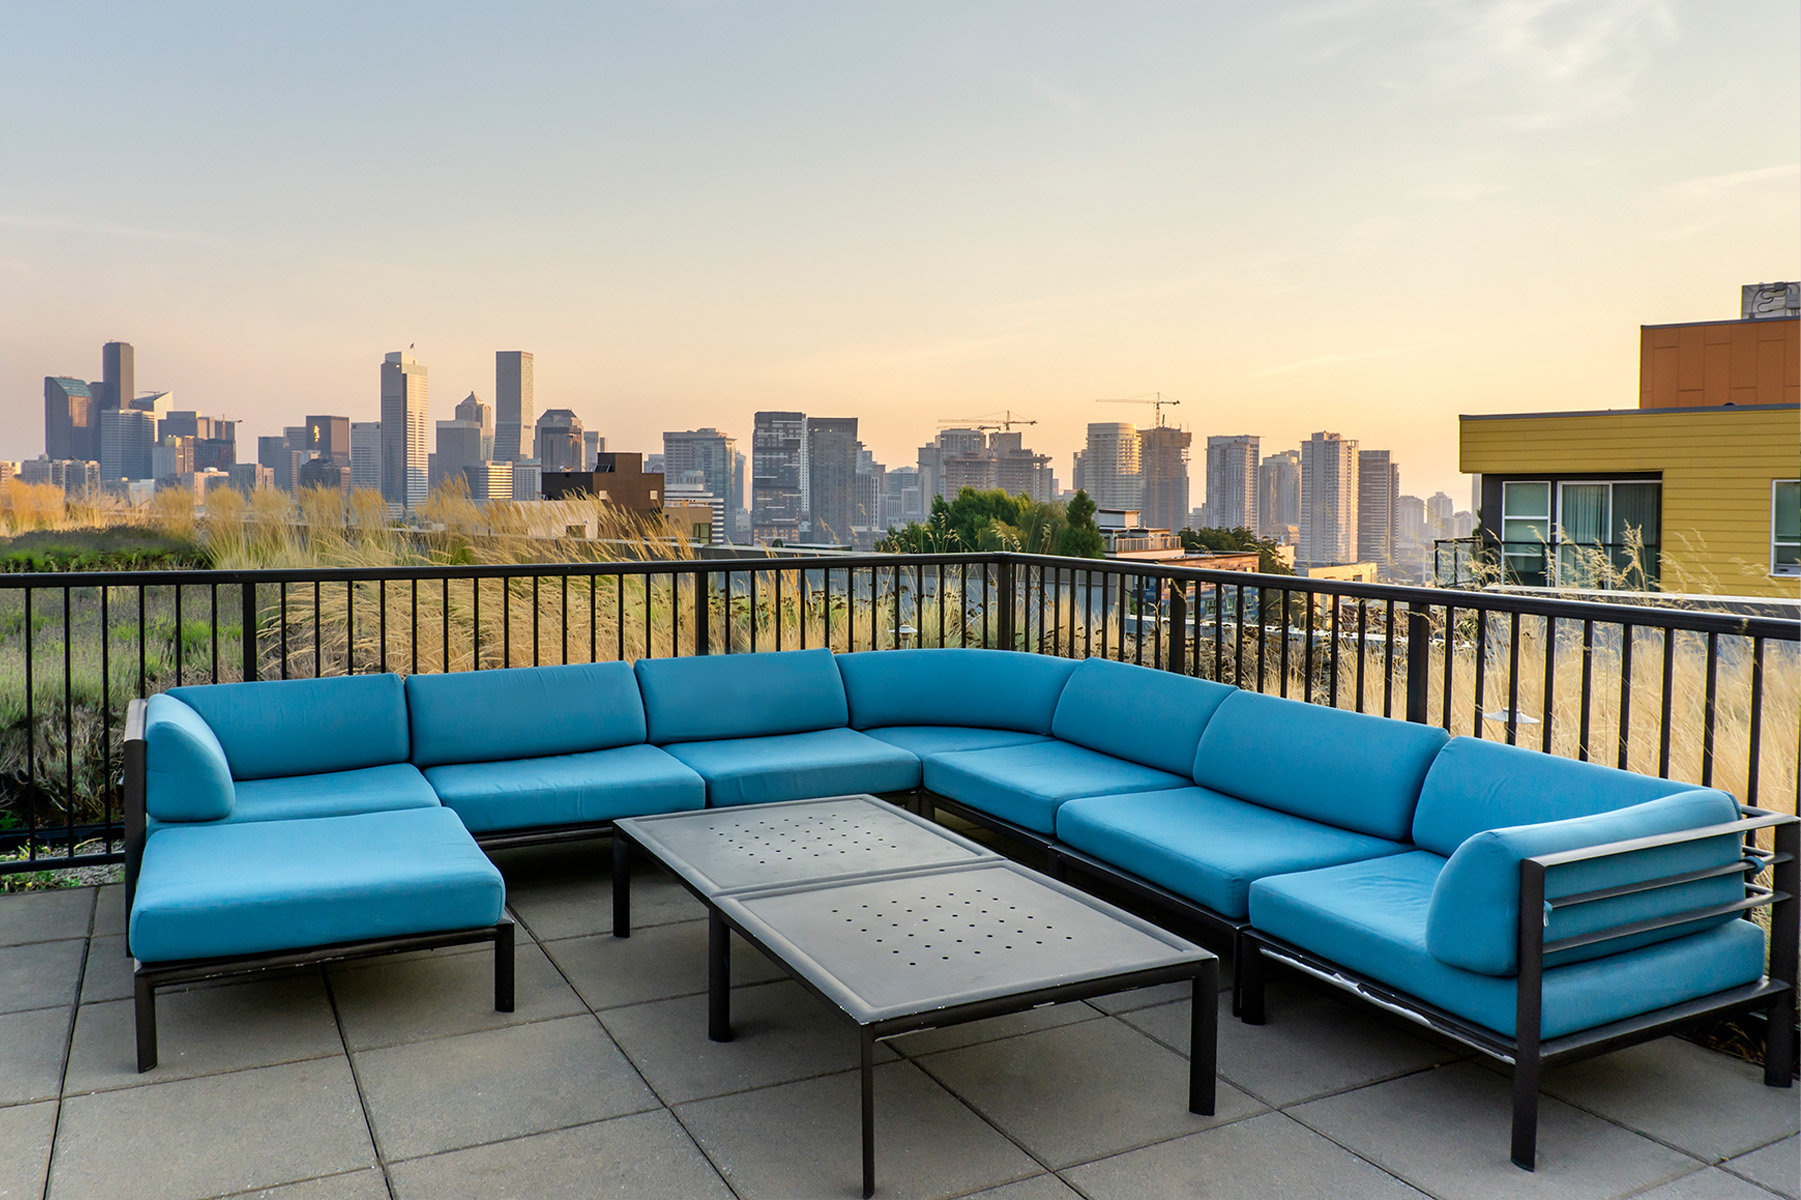 essex patent 523 couch sunset roof